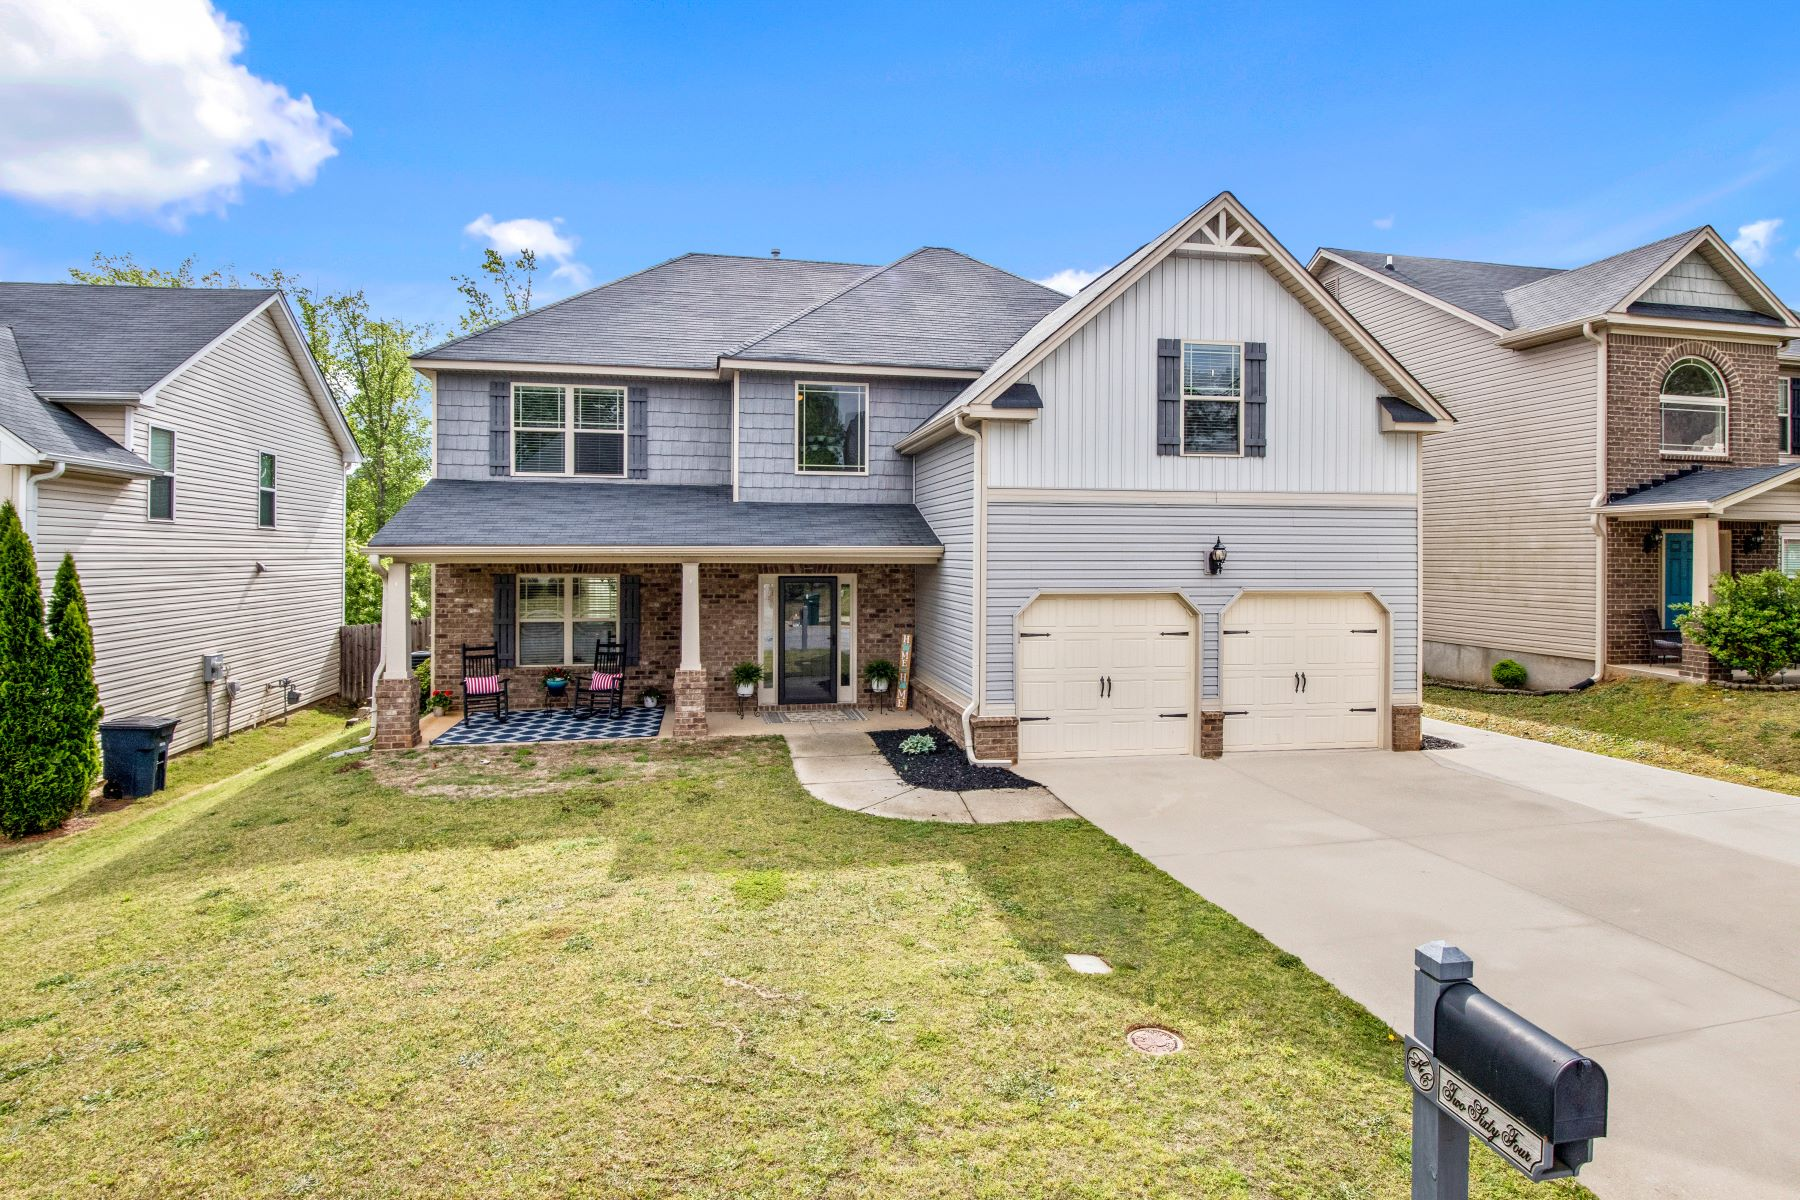 Single Family Homes for Sale at 264 Oak Branch Drive, Simpsonville, SC 29681 264 Oak Branch Drive Simpsonville, South Carolina 29681 United States